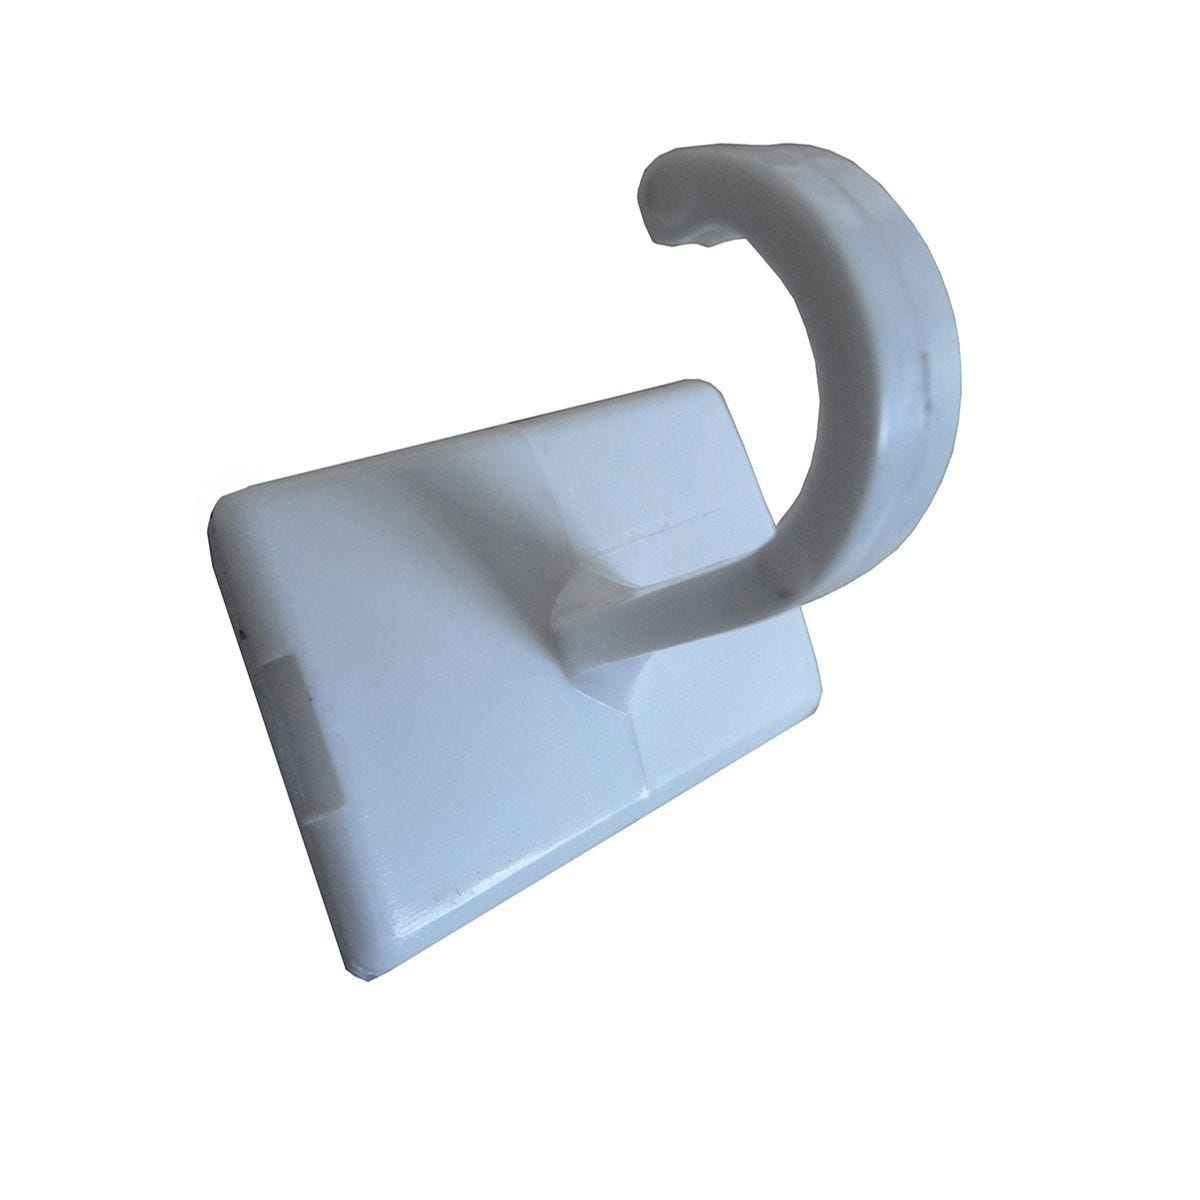 Select Hardware 30mm White Cup Hooks - 4 Pack